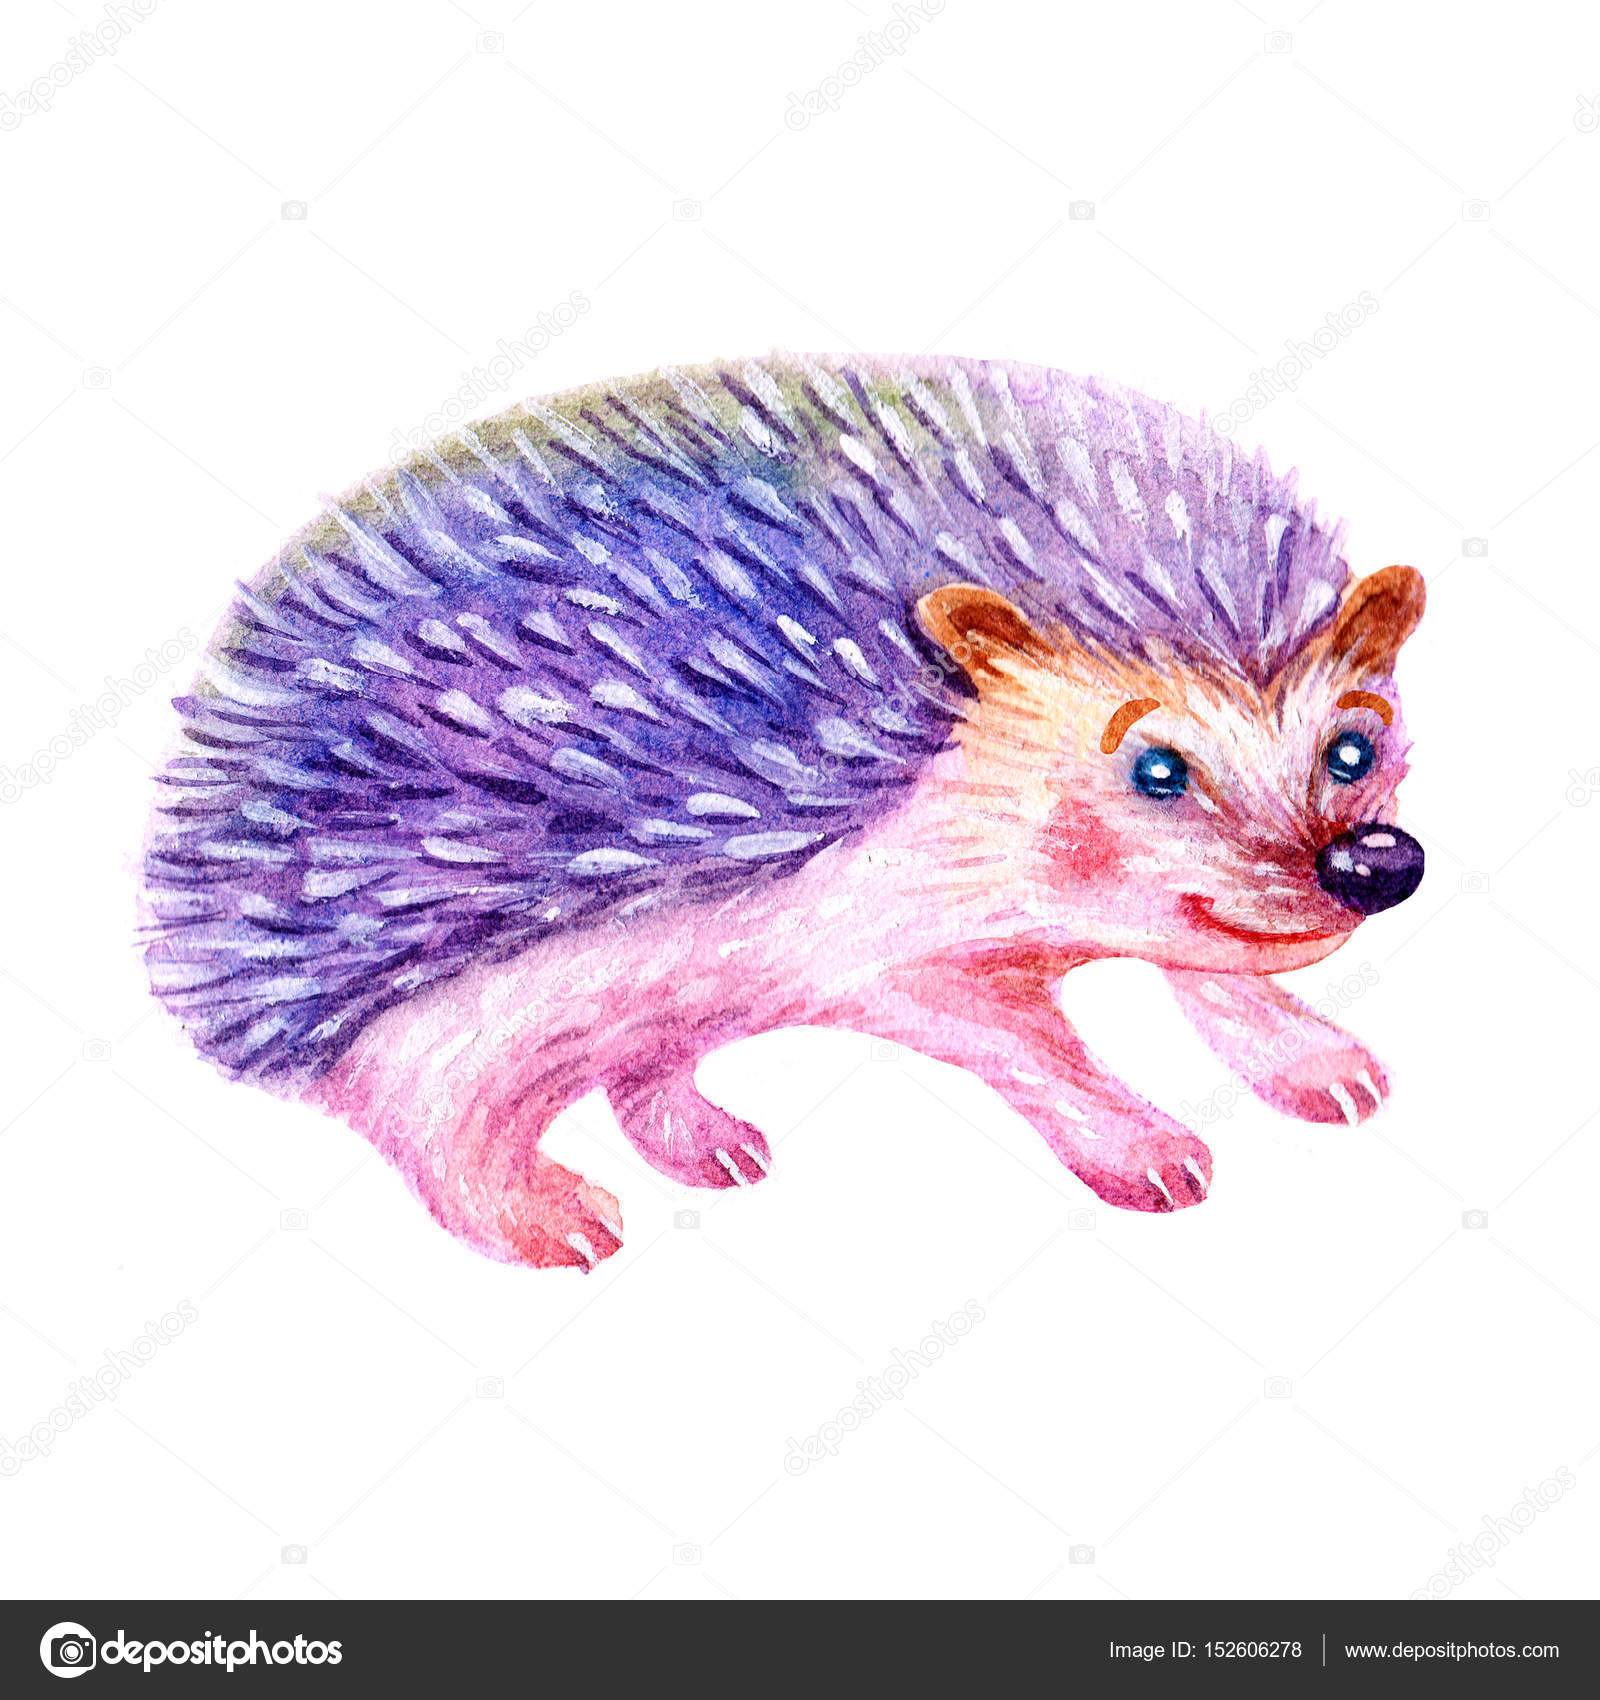 Cute Watercolor Cartoon Hedgehog Illustration Isolated On White BackgroundHand Painted Greeting Card With Animal ElementVintage